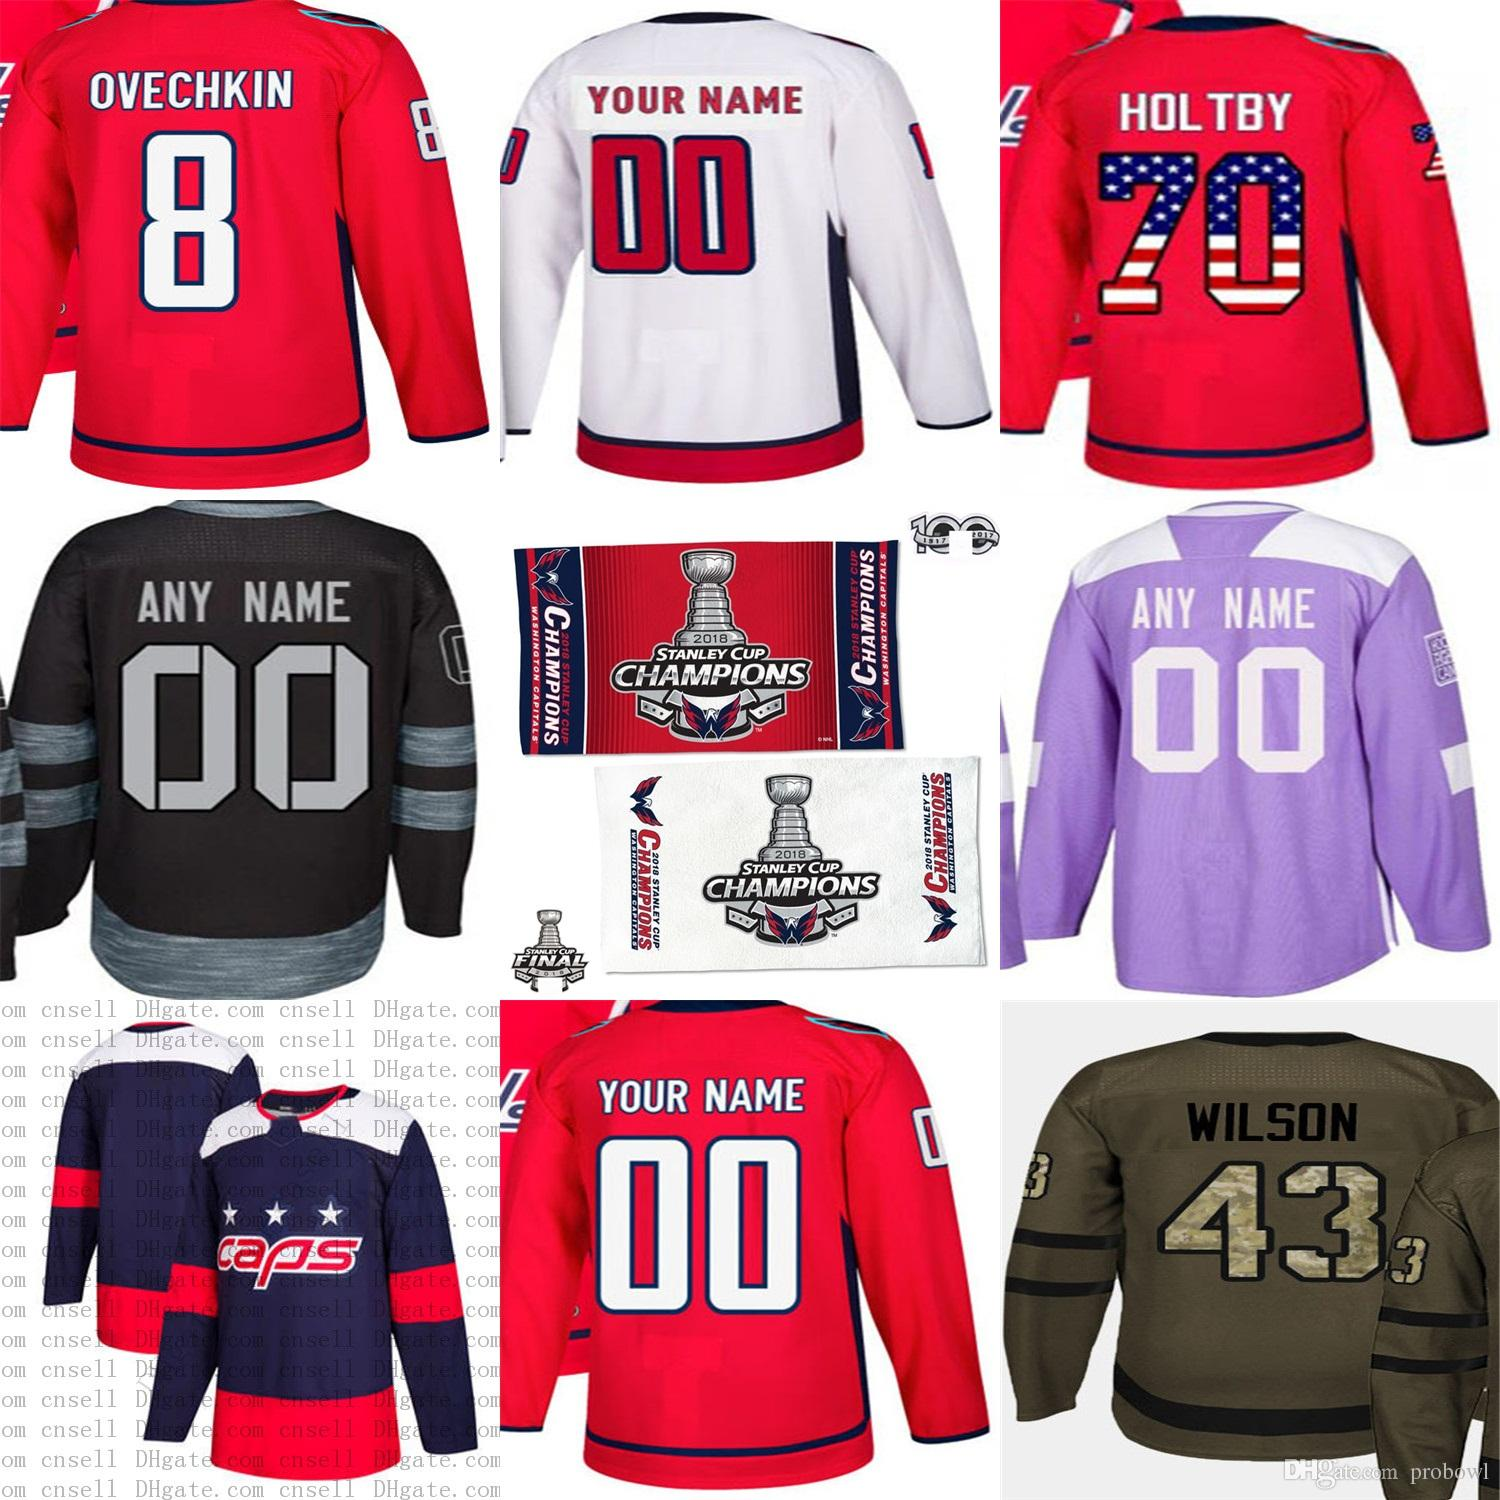 2018 Stanley Cup Final Champion Patch Any Name NO. Custom Hockey Jerseys  Capitals Blank 8 Alex Ovechkin T.J. Oshie Purple White Flag Salute UK 2019  From ... 5aa98e93f